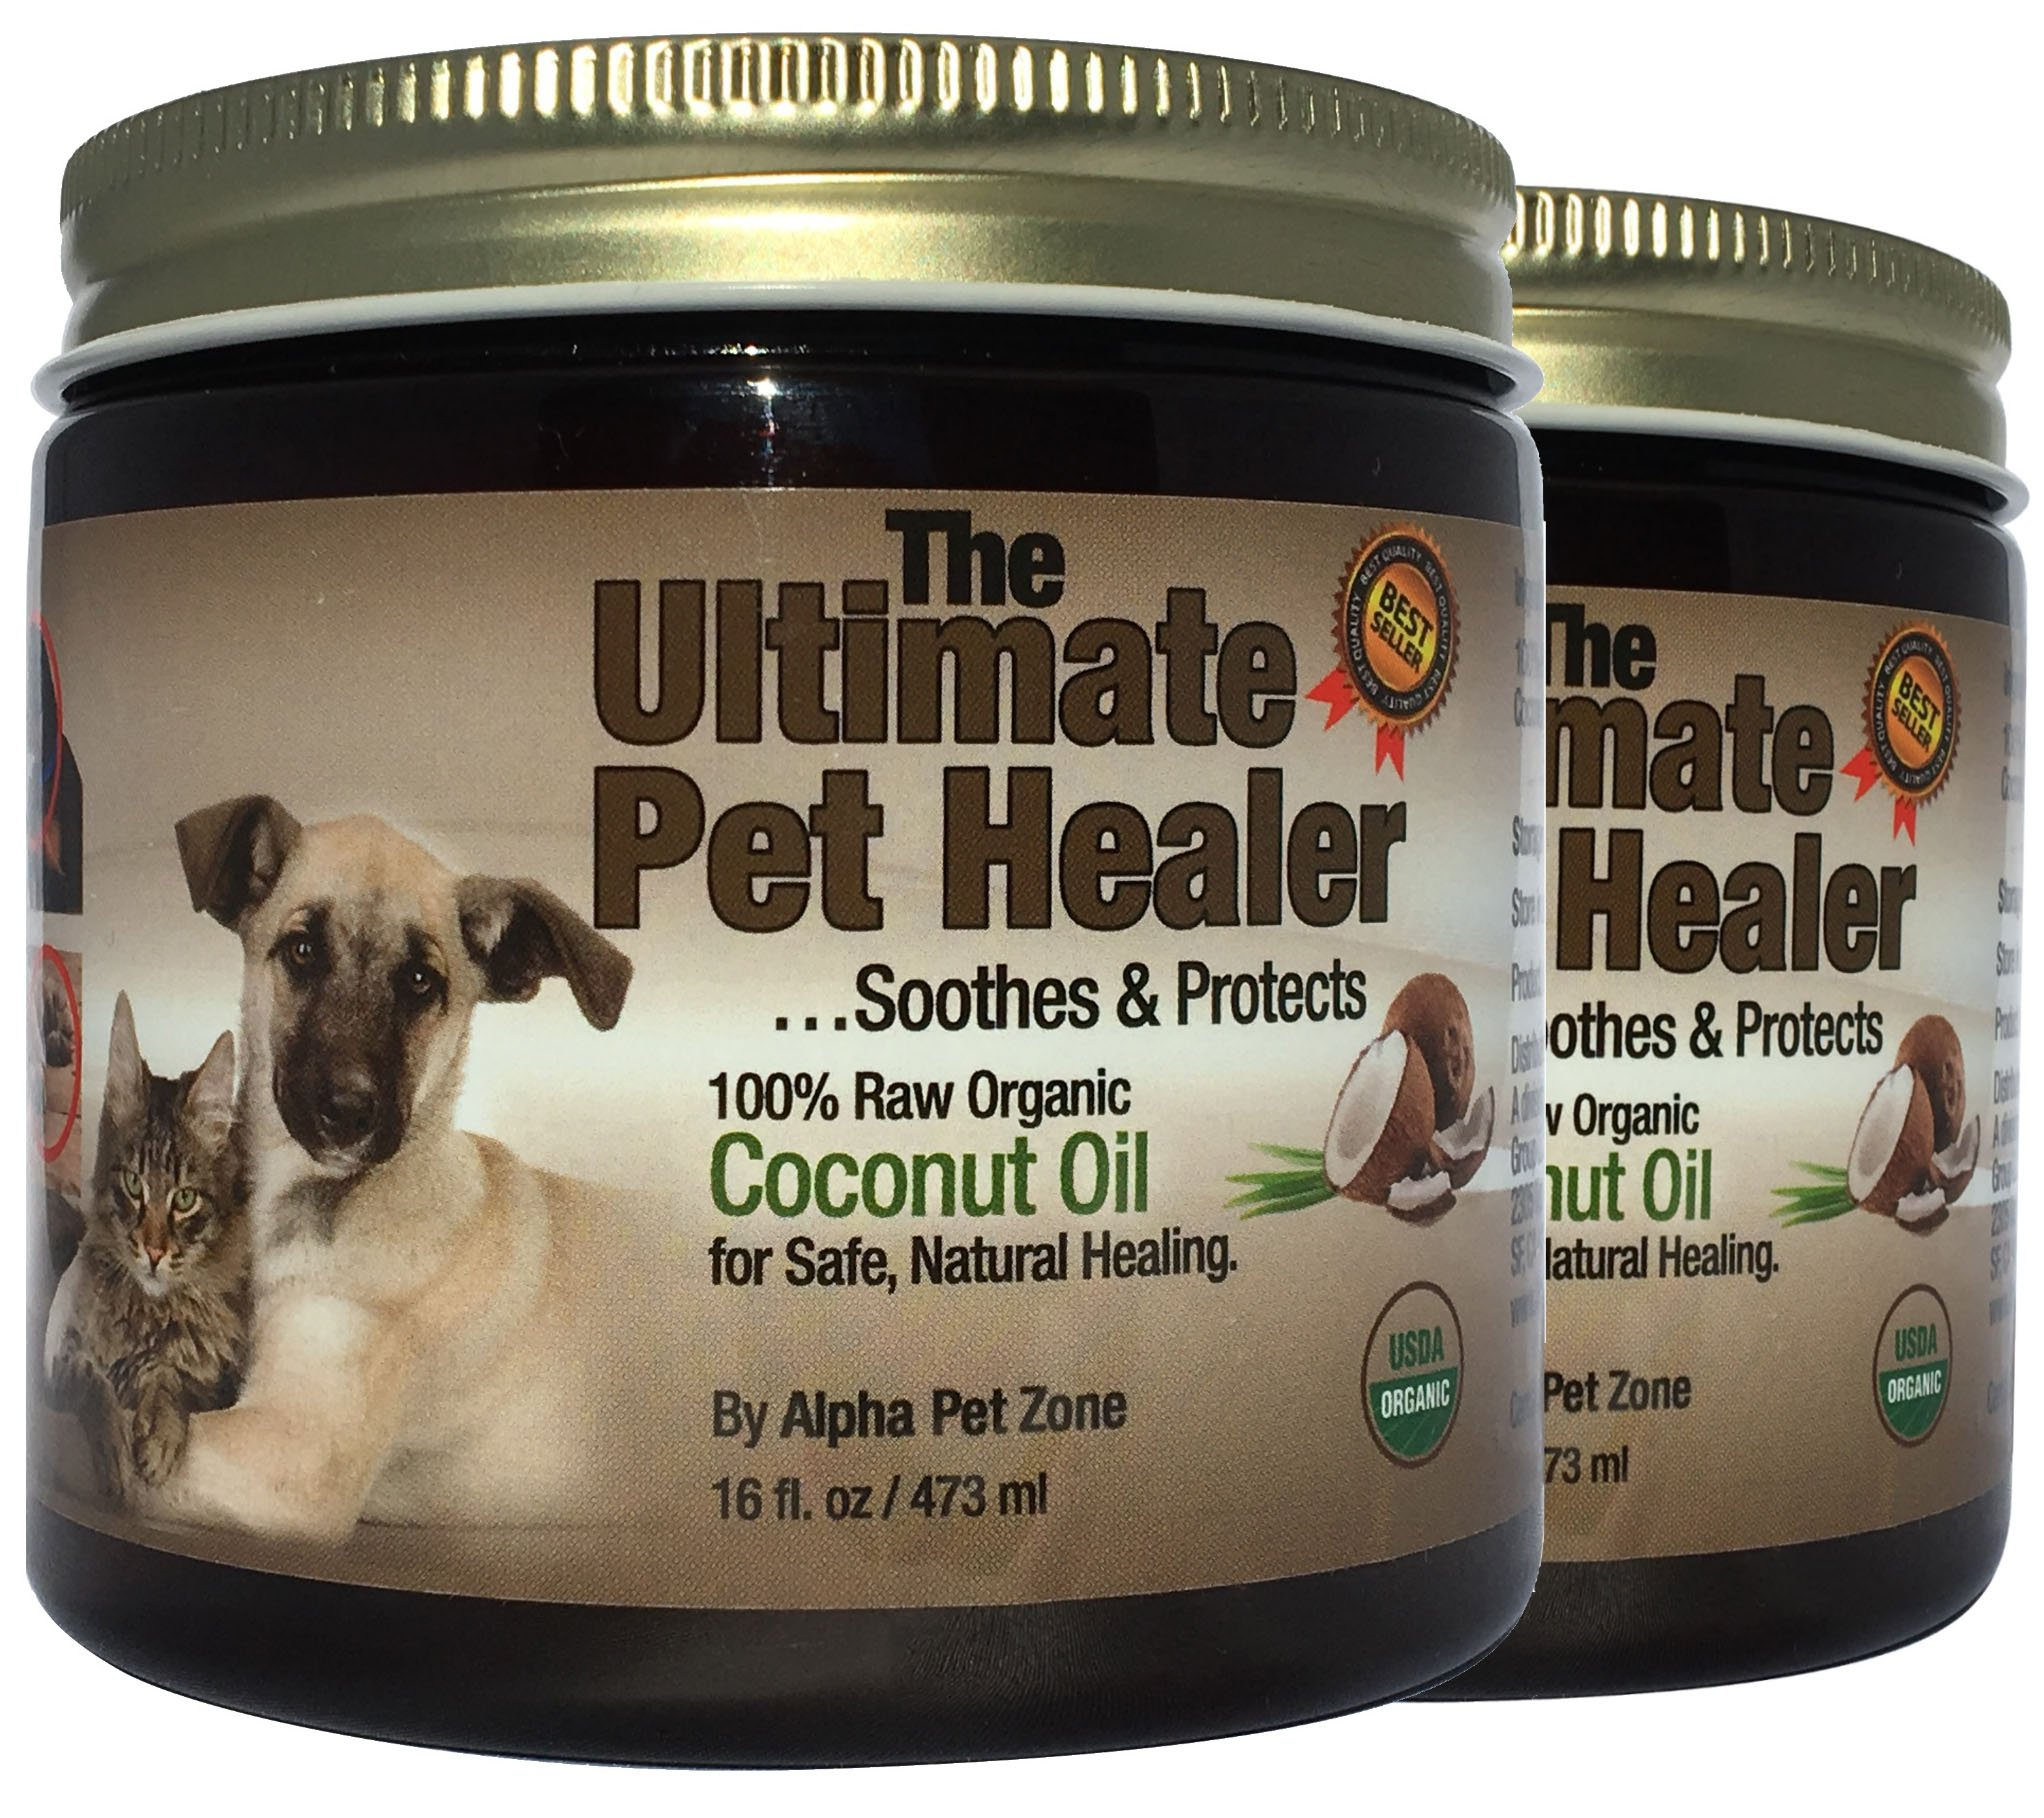 Alpha Pet Zone Coconut Oil for Dogs, Treatment for Itchy Skin, Dry Elbows, Paws and Nose (Pack of 2)